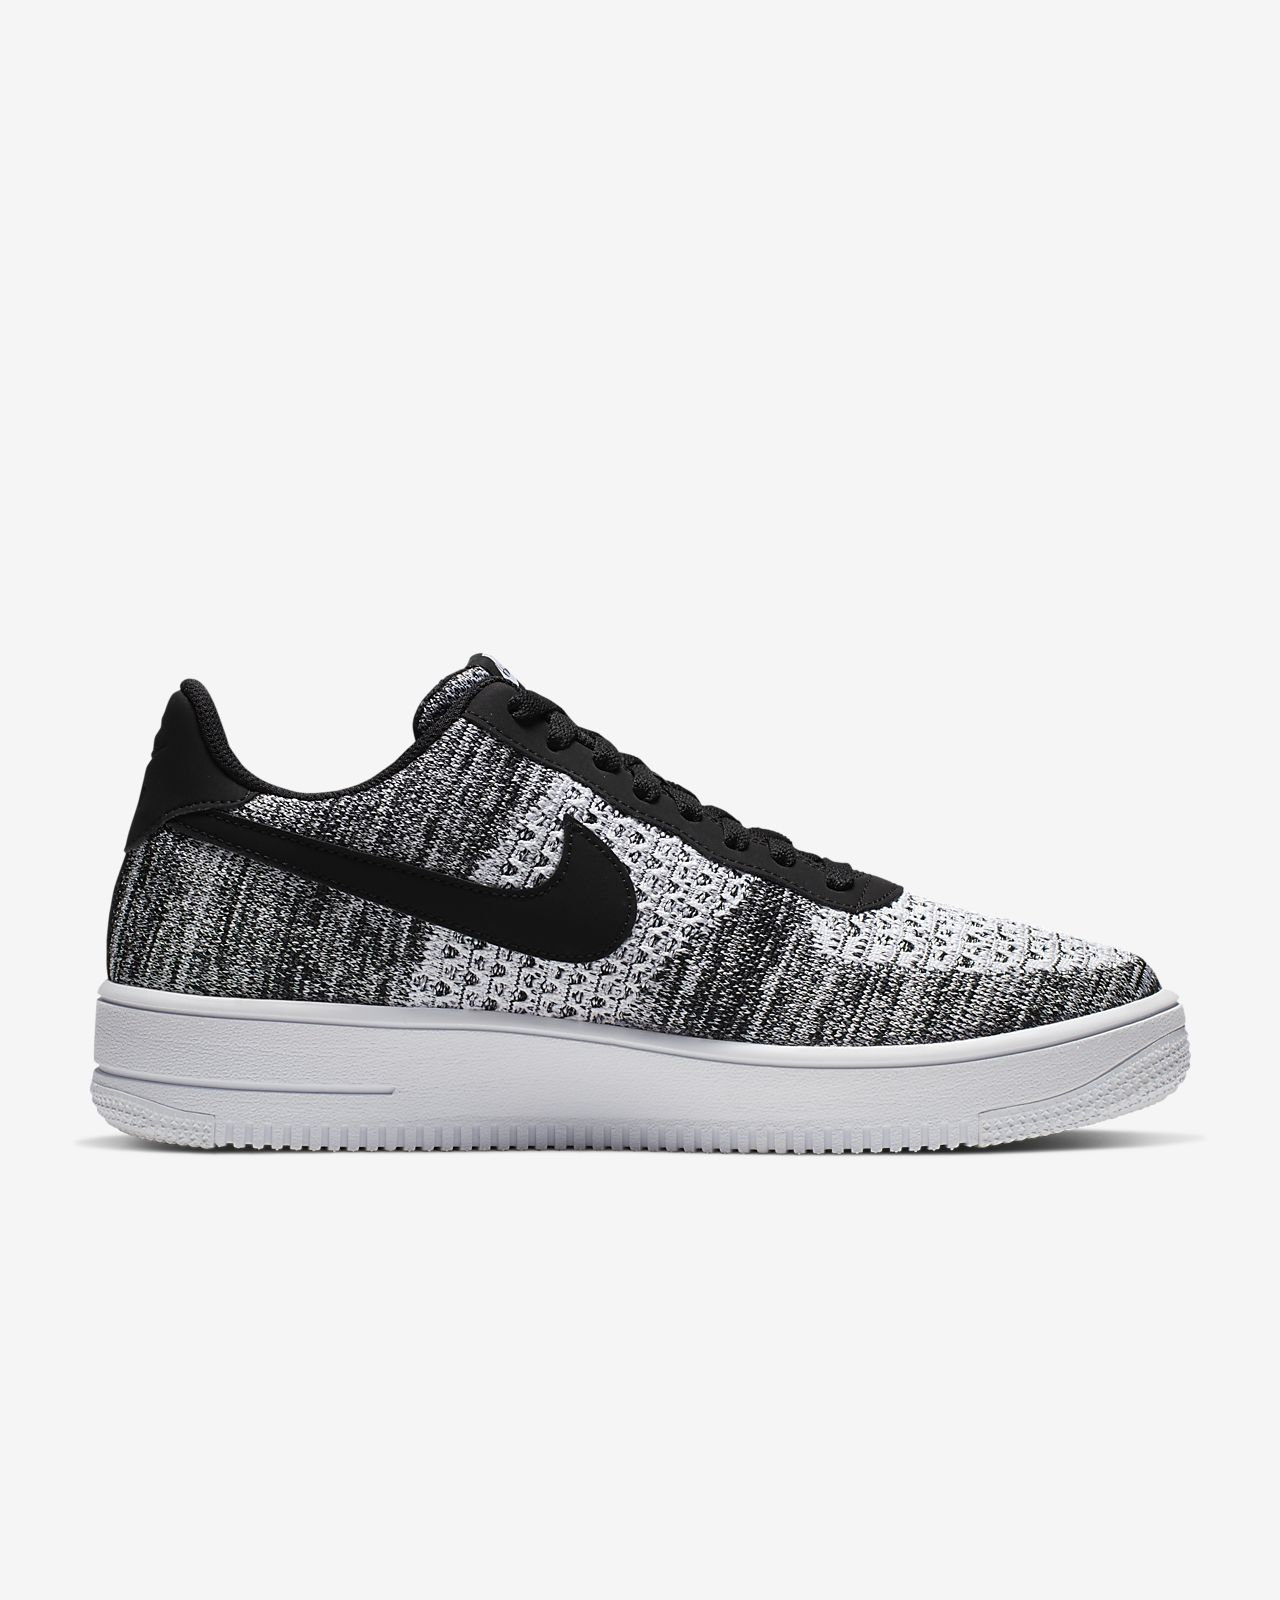 premium selection d977c ef0c8 ... Nike Air Force 1 Flyknit 2.0 Men s Shoe